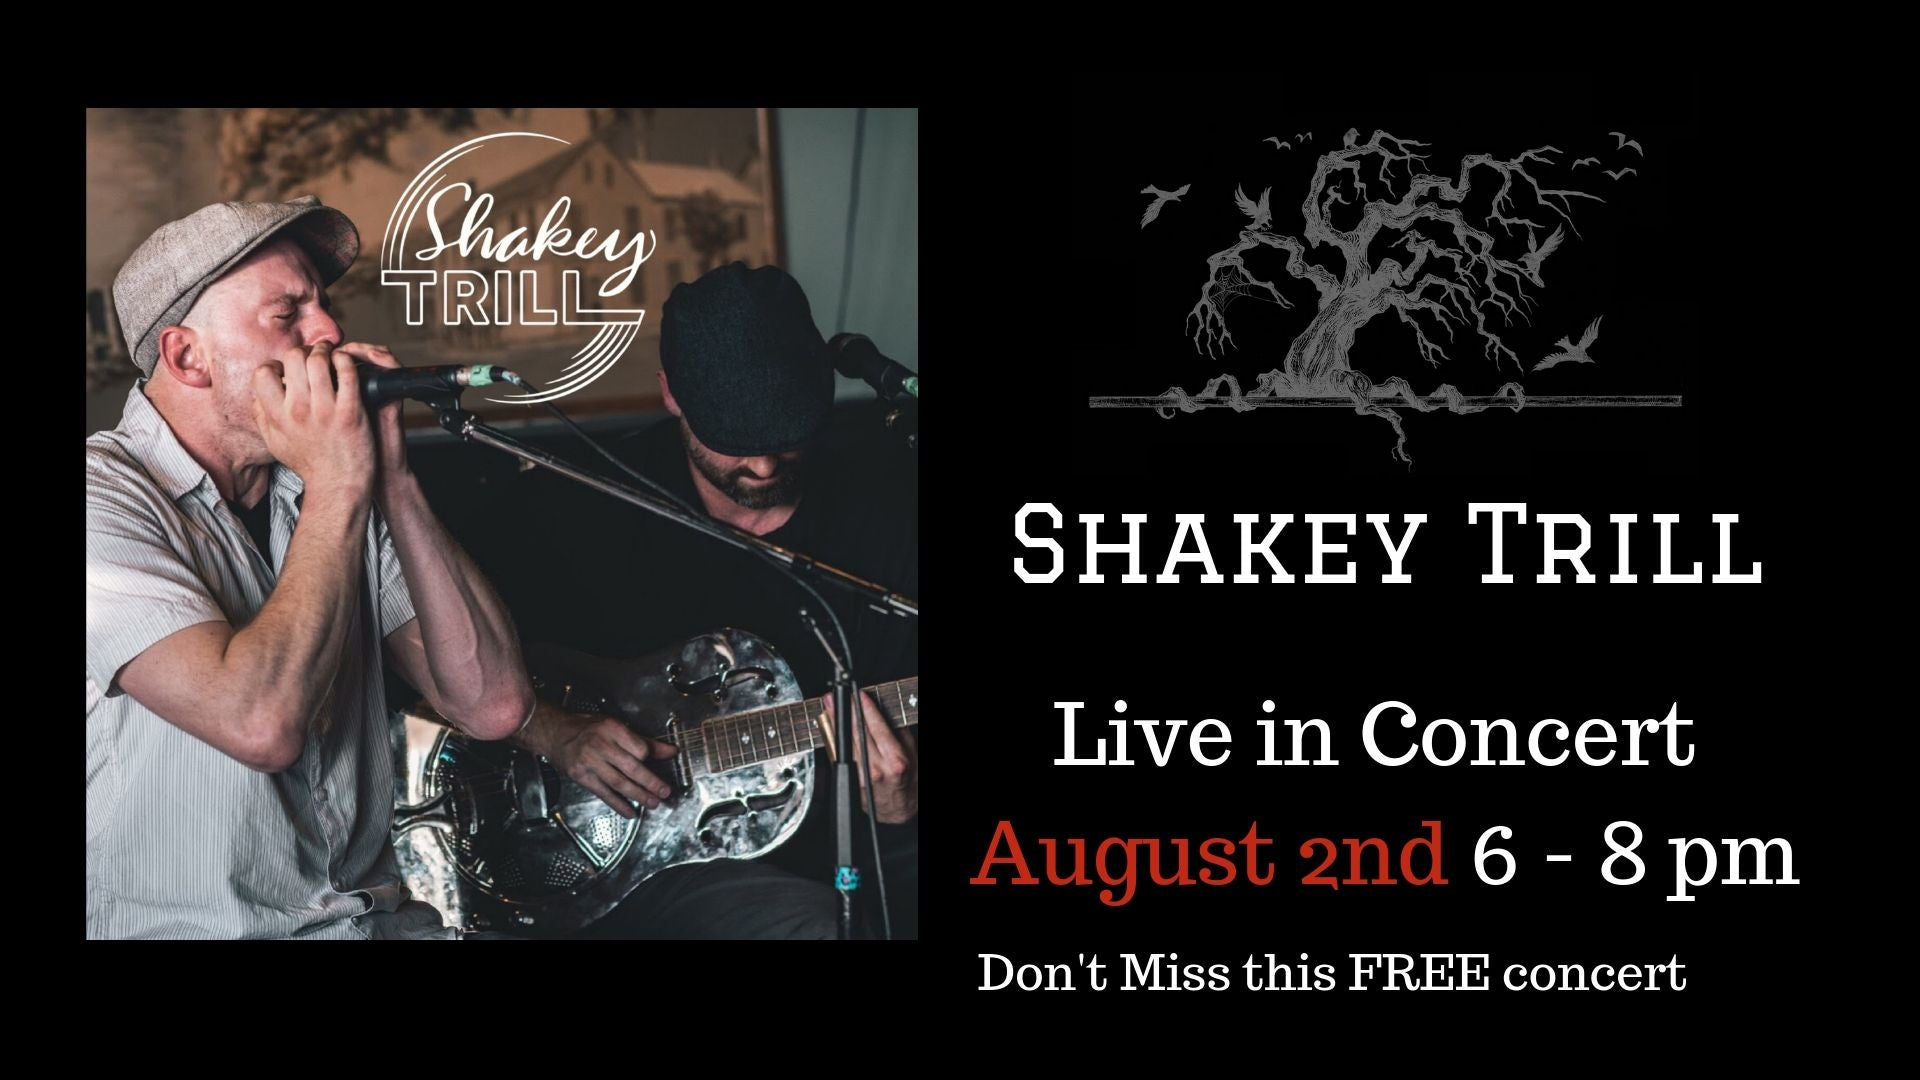 Shakey Trill Concert - Coffin Ridge Boutique Winery Inc